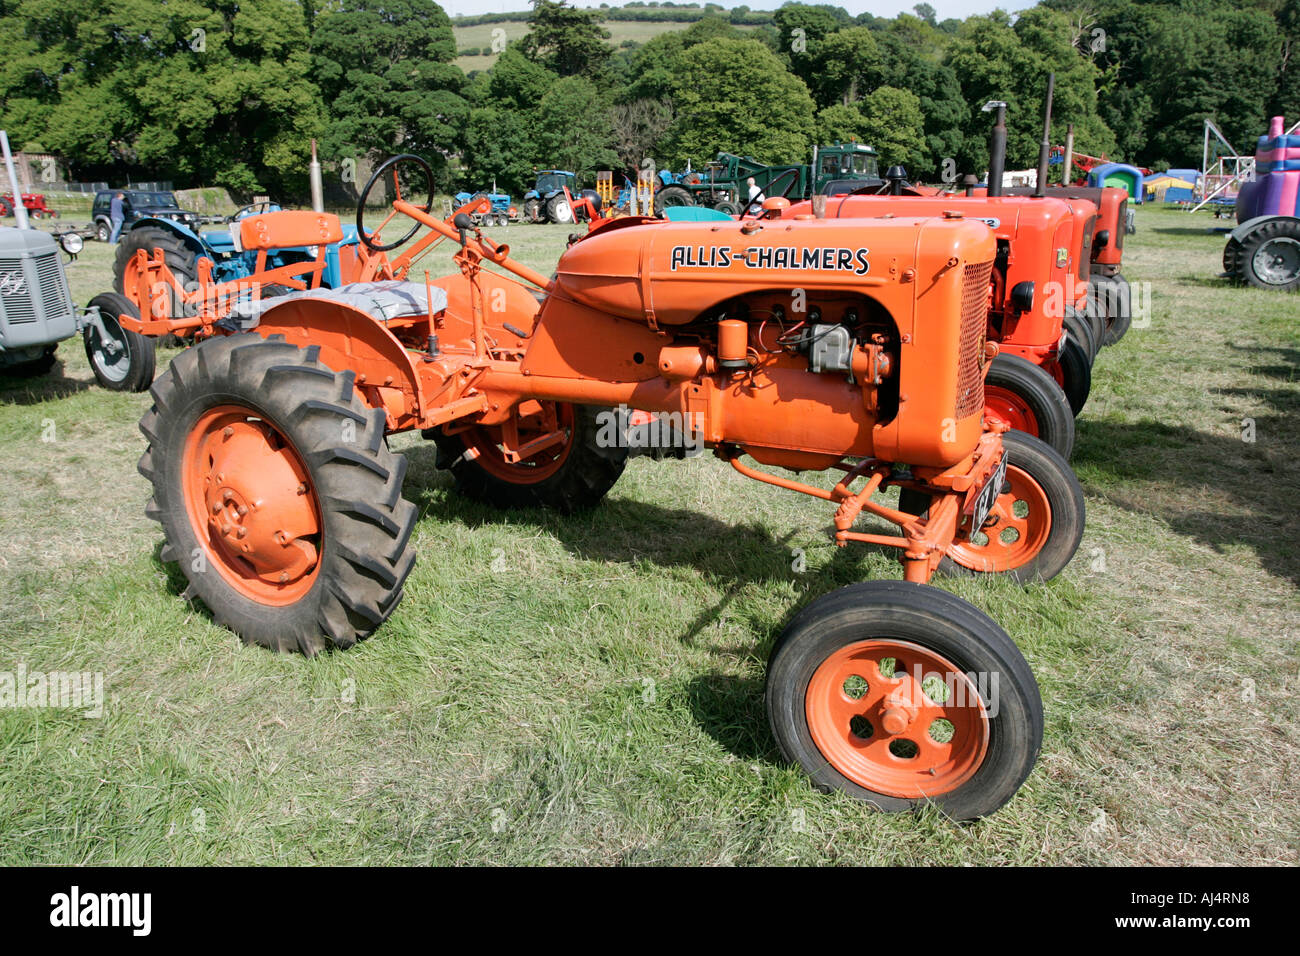 Allis Chalmers Model B Classic Tractor During Vintage Tractor Rally At Glenarm Castle Open Day County